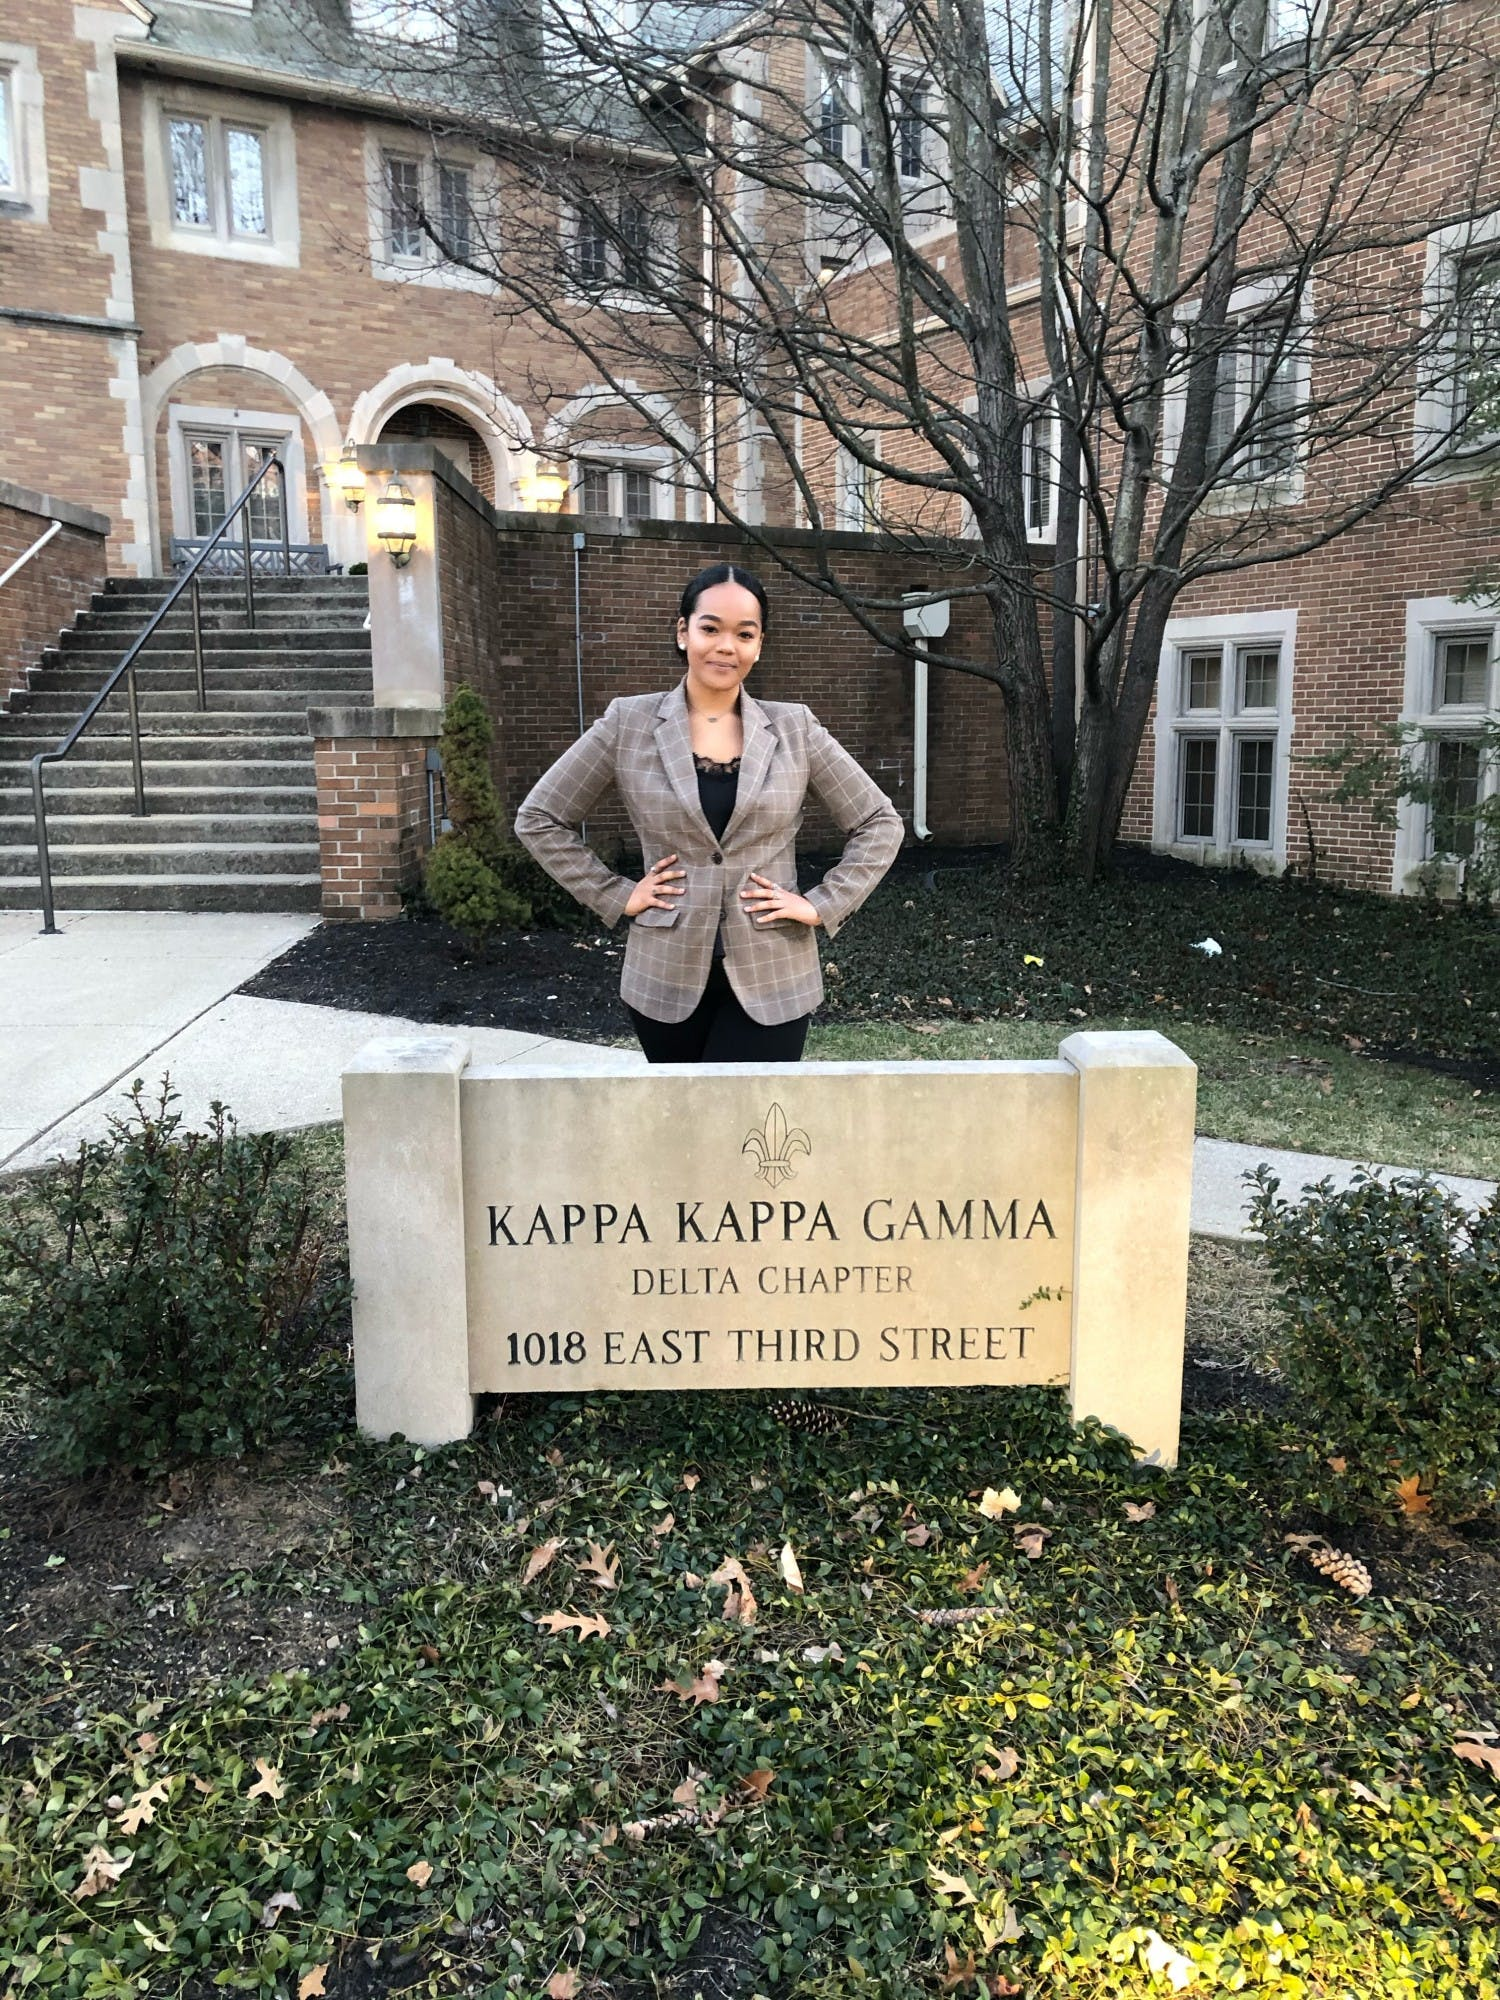 Langdan Willoughby stands in front of the Kappa Kappa Gamma house at 1018 E. Third St. in February 2020. IU's Delta chapter is the sorority's oldest continuously active chapter.